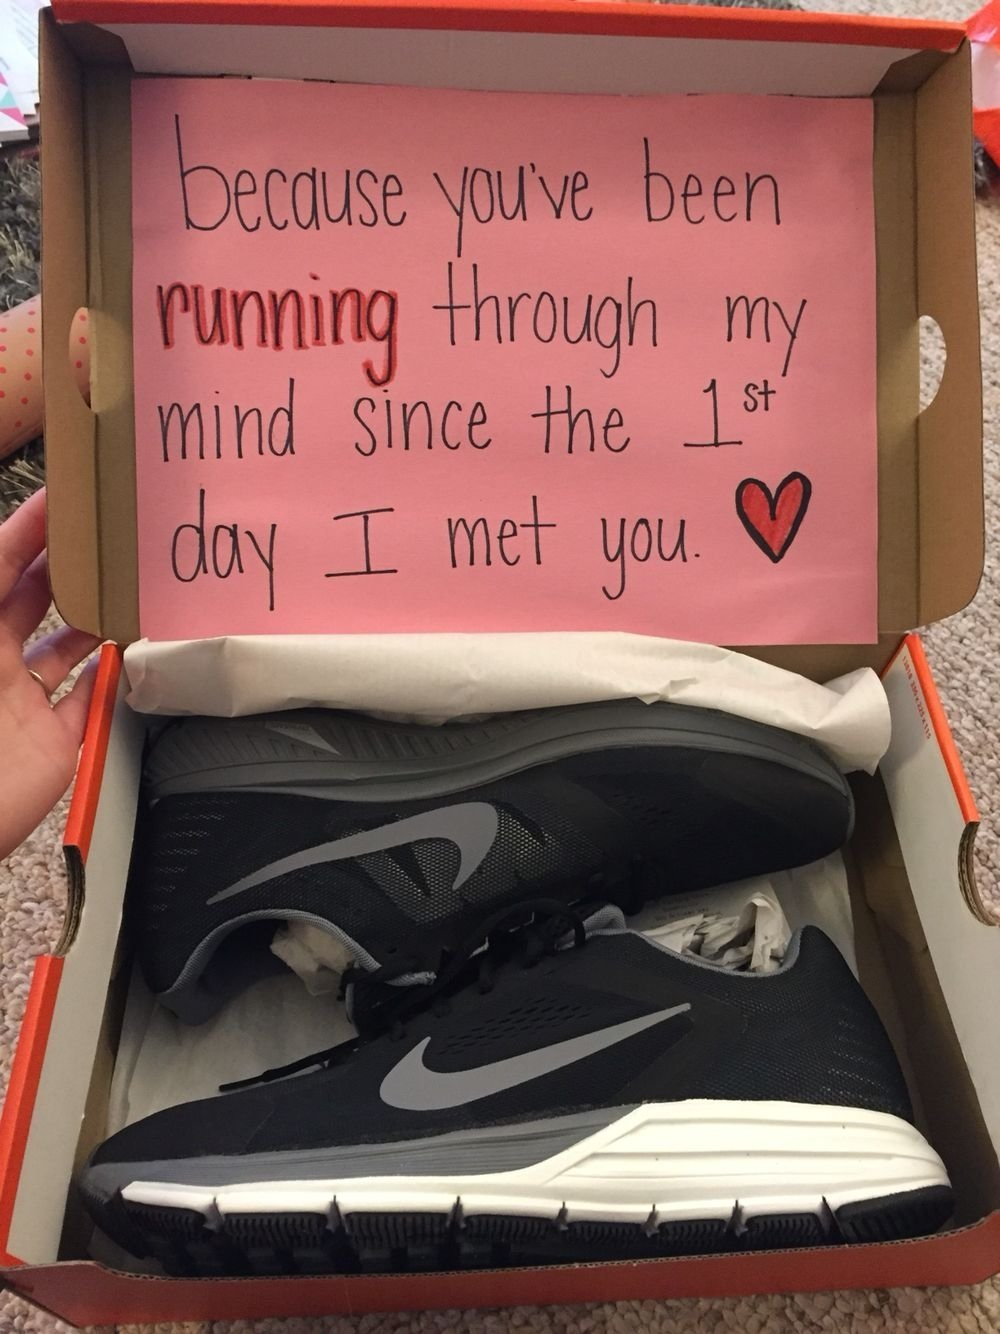 10 Attractive Bday Gift Ideas For Him gift ideas for him gift idea pinterest gift boyfriends and 17 2020